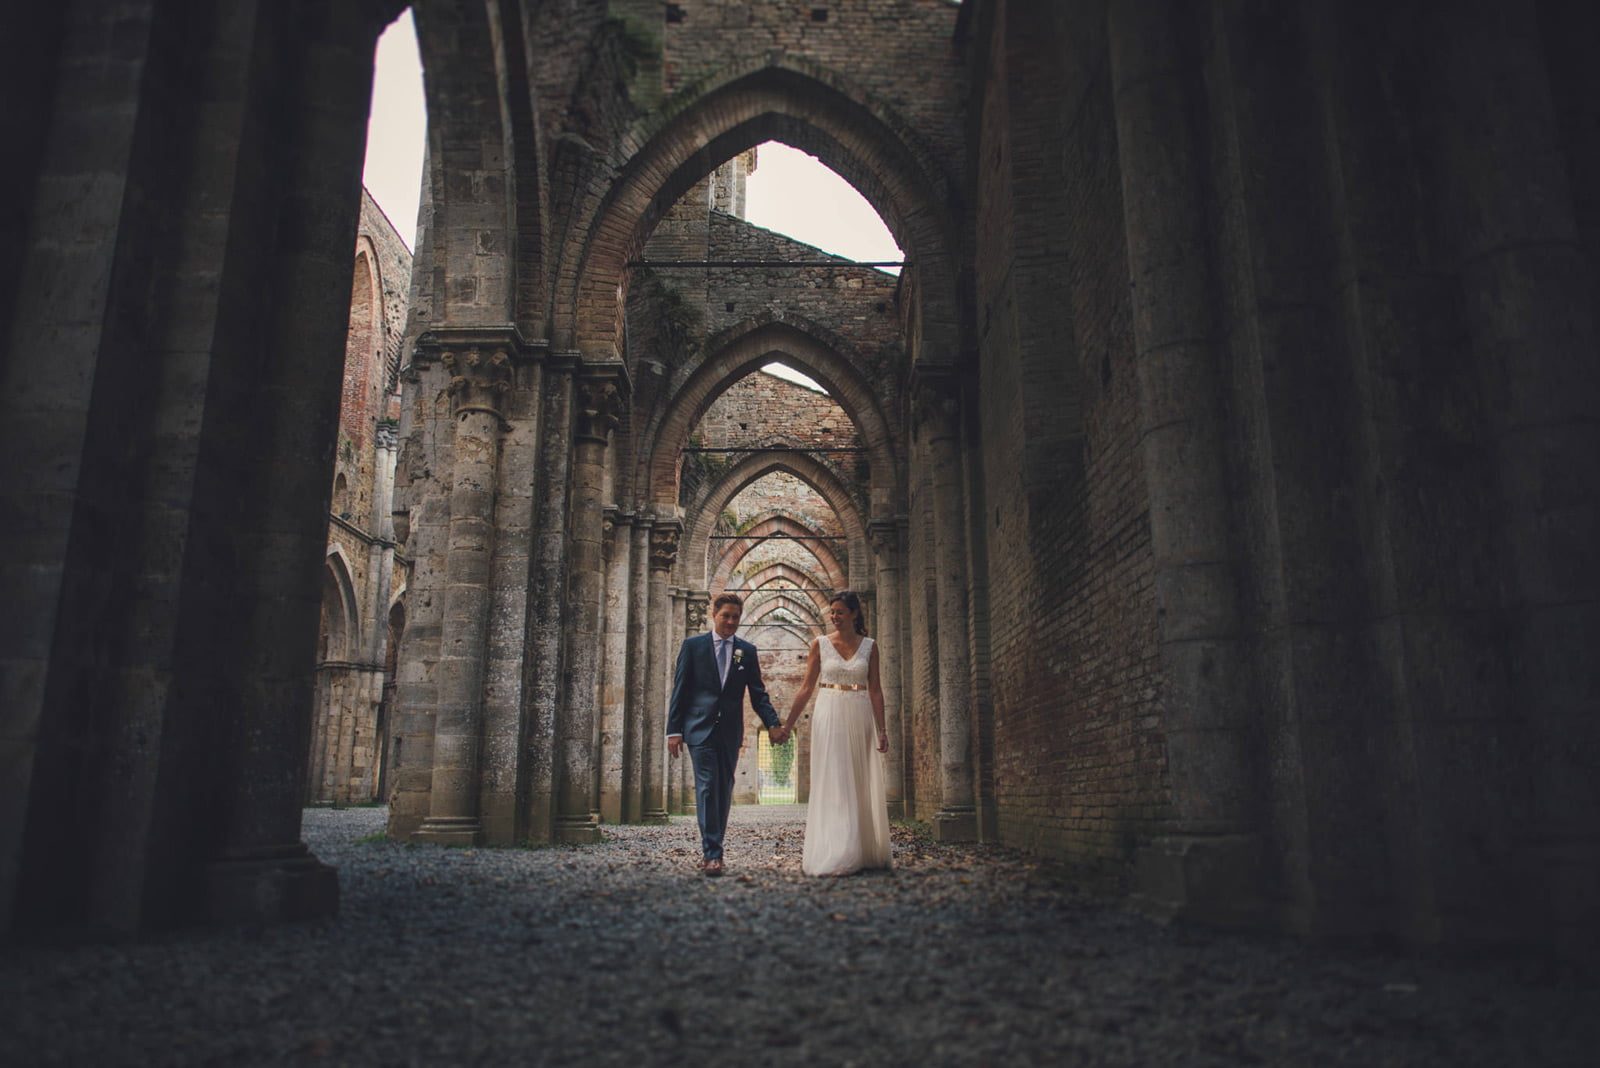 070-wedding-tuscany-san-galgano-siena-photographer